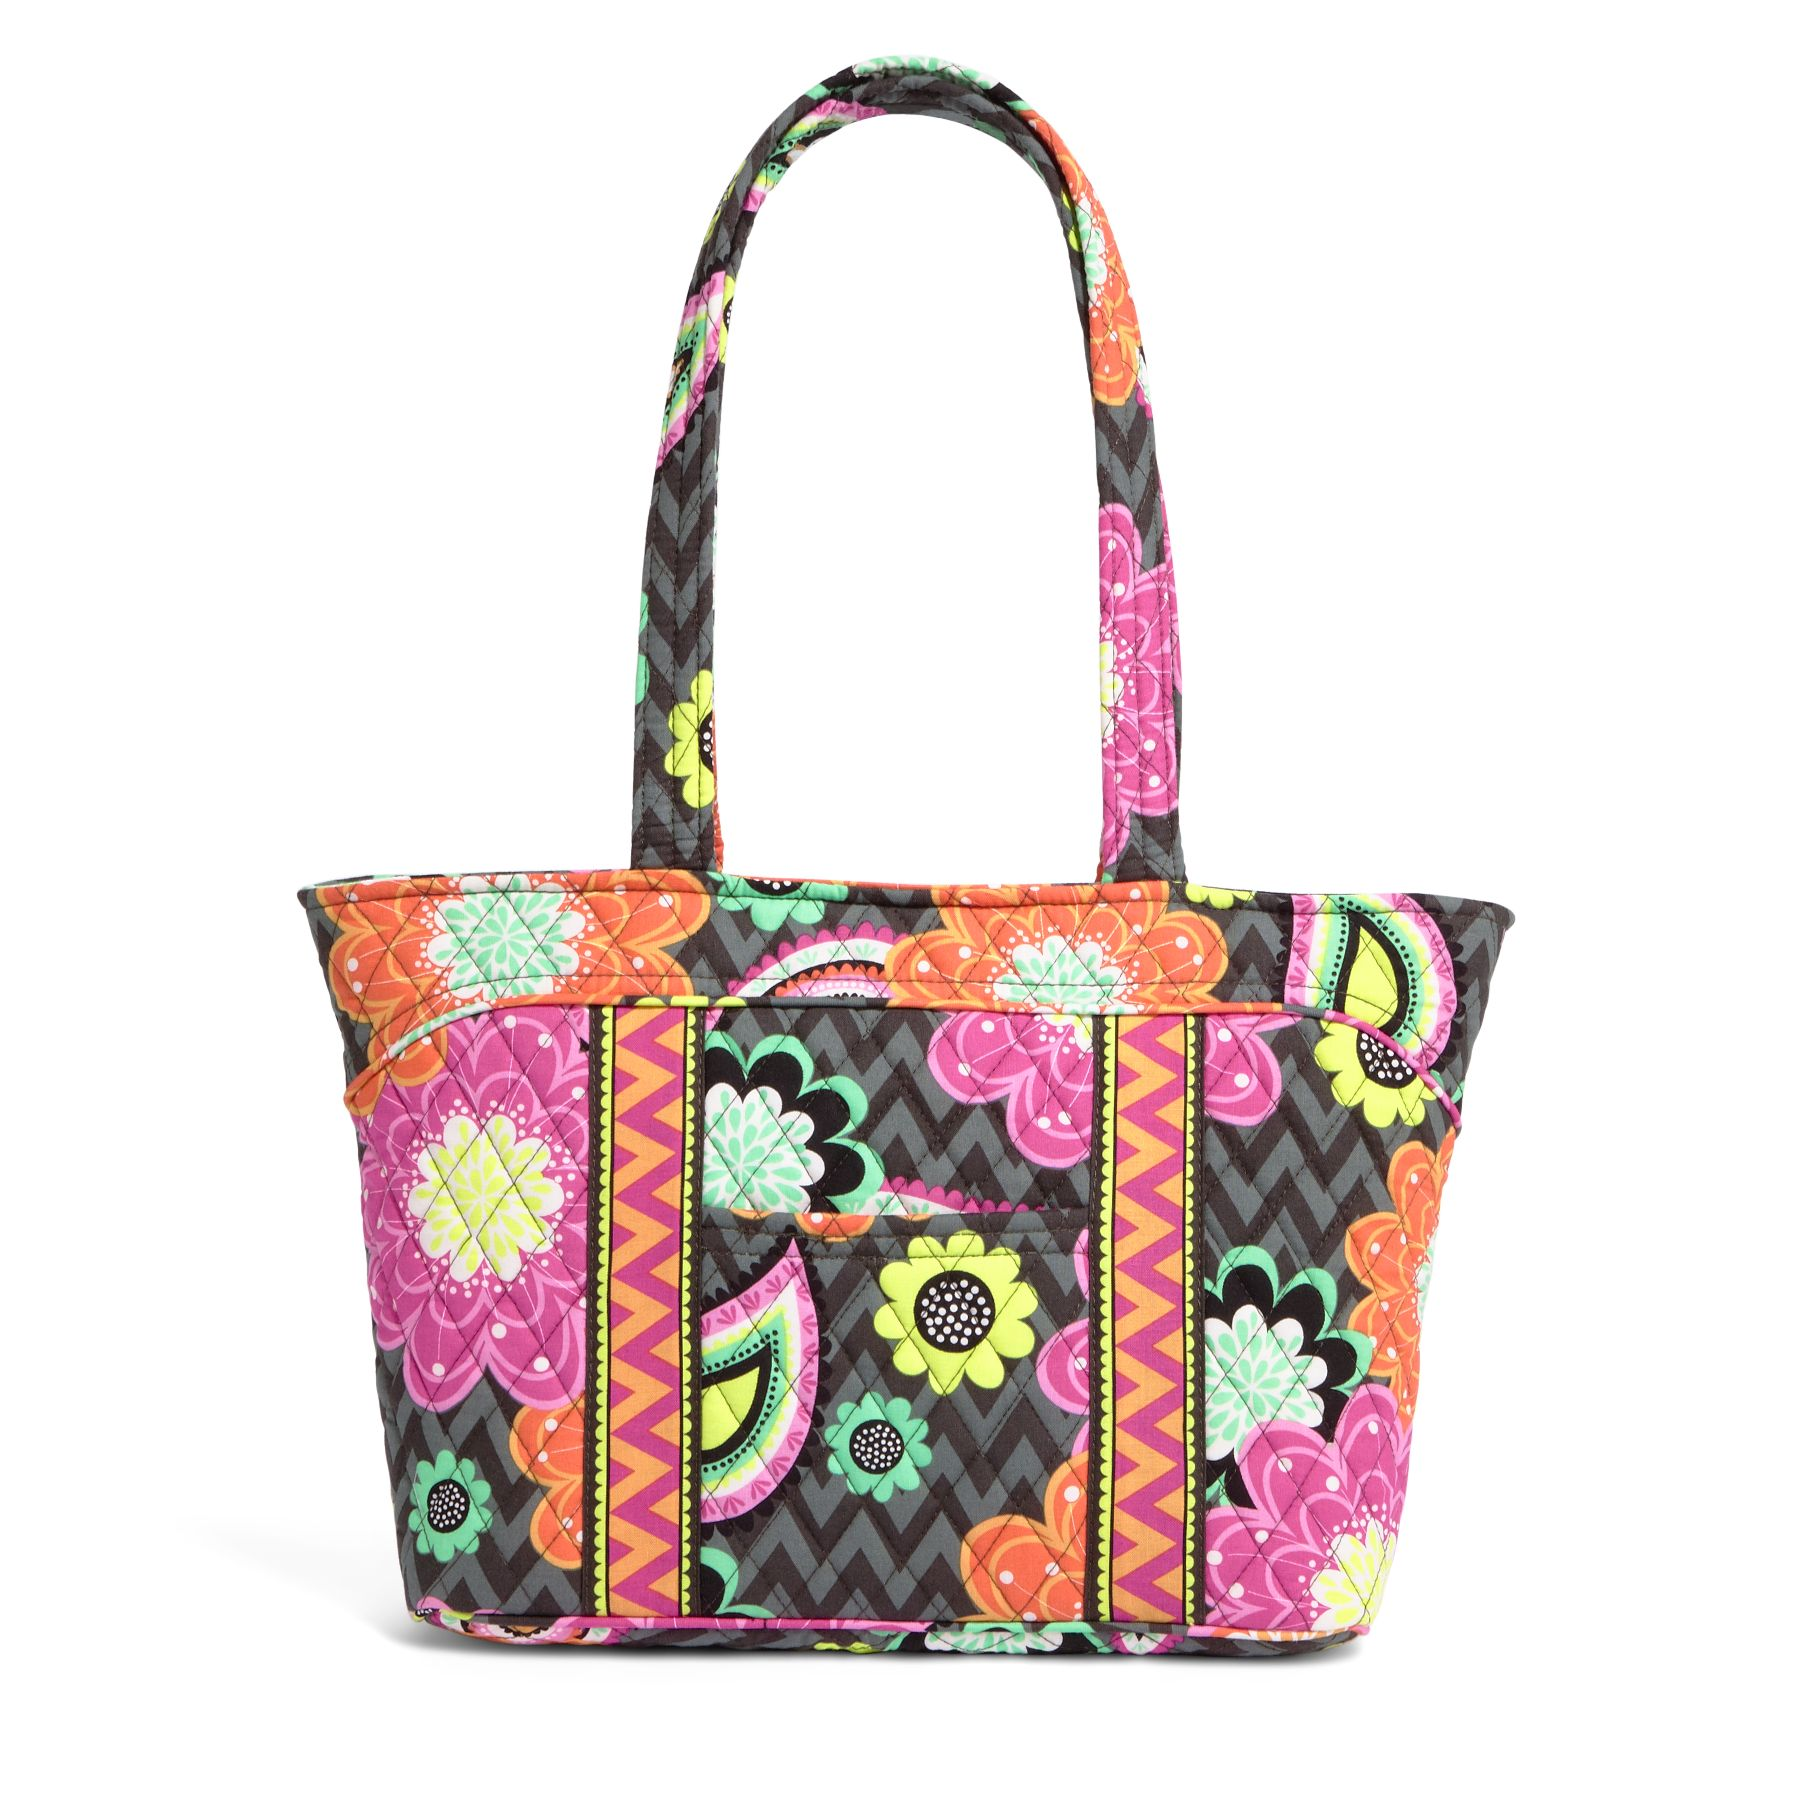 Vera Bradley Mandy Shoulder Bag in Ziggy Zinnia